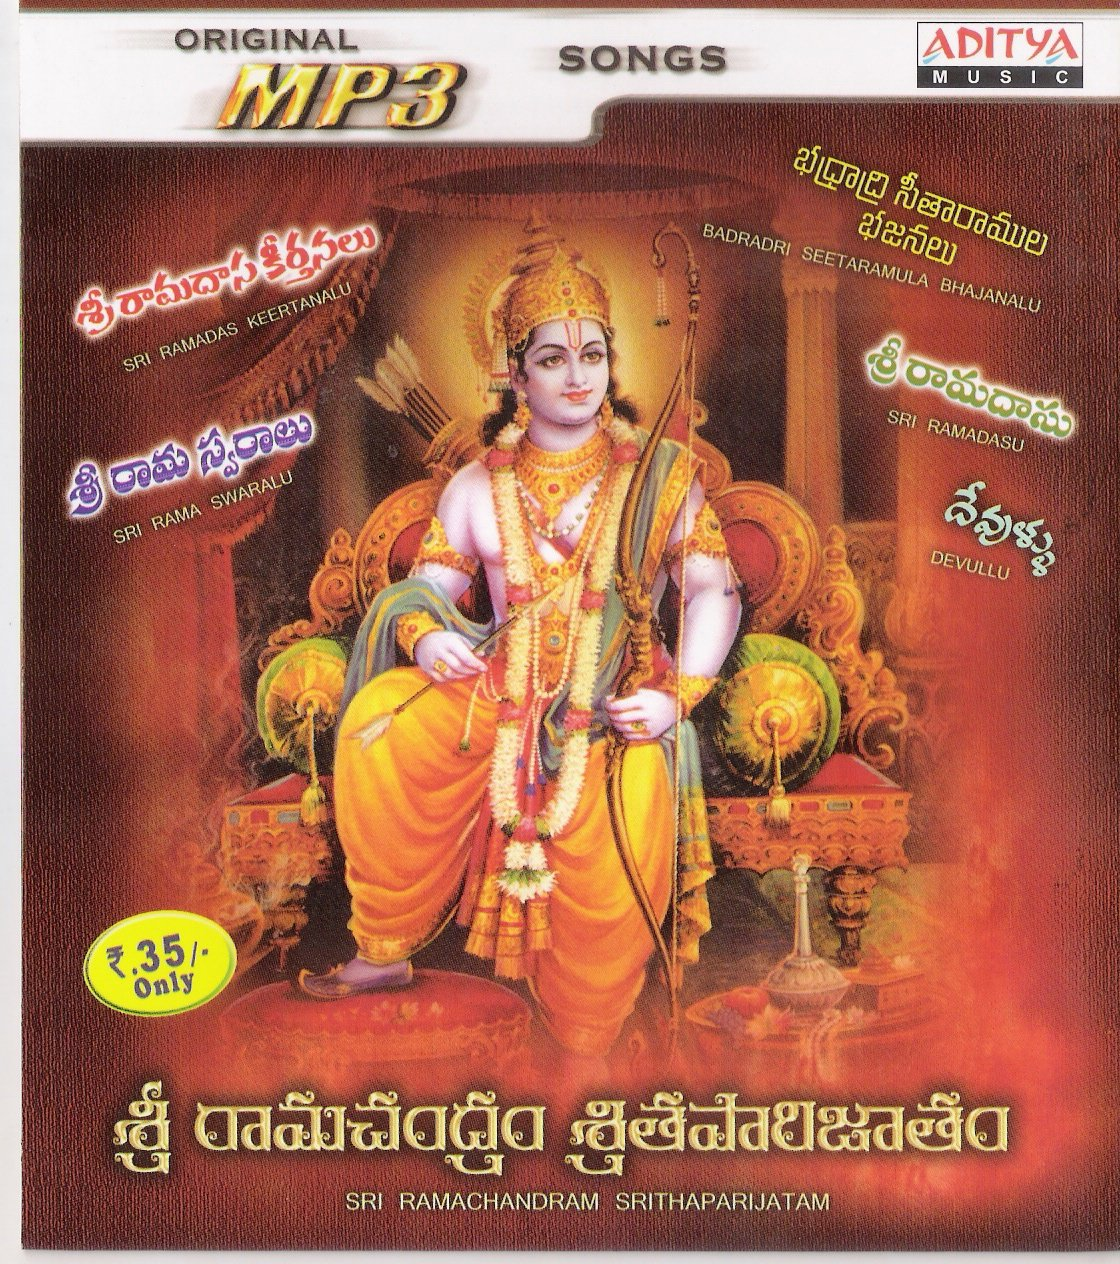 Buy Sri Ramachndram Srithaparijatham Online at Low Prices in India | Amazon  Music Store - Amazon.in